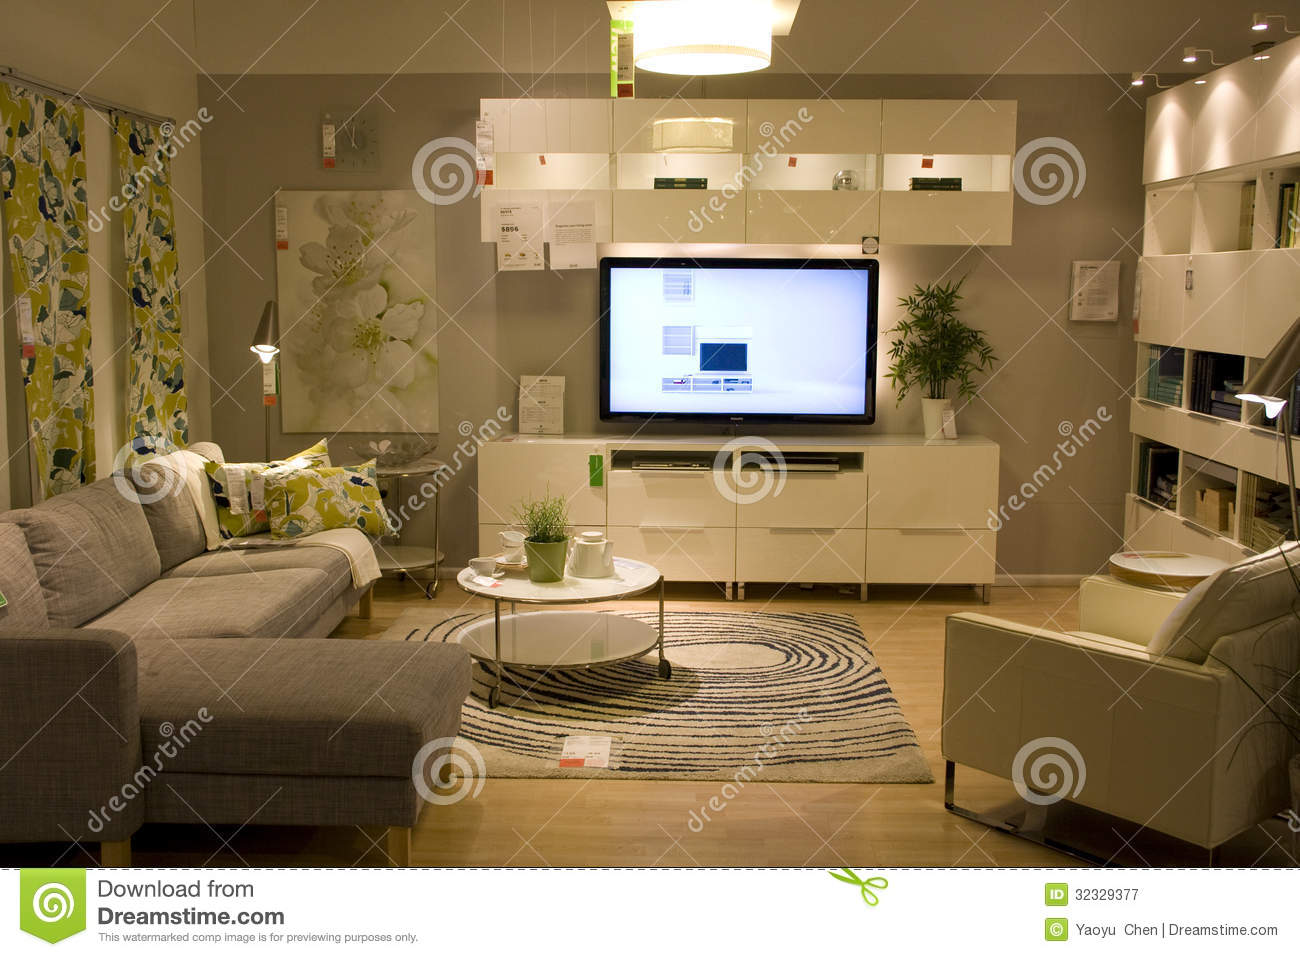 Furniture Displayed In A Clothes Shop Close Up Low Angle Royalty Free Stock Photo